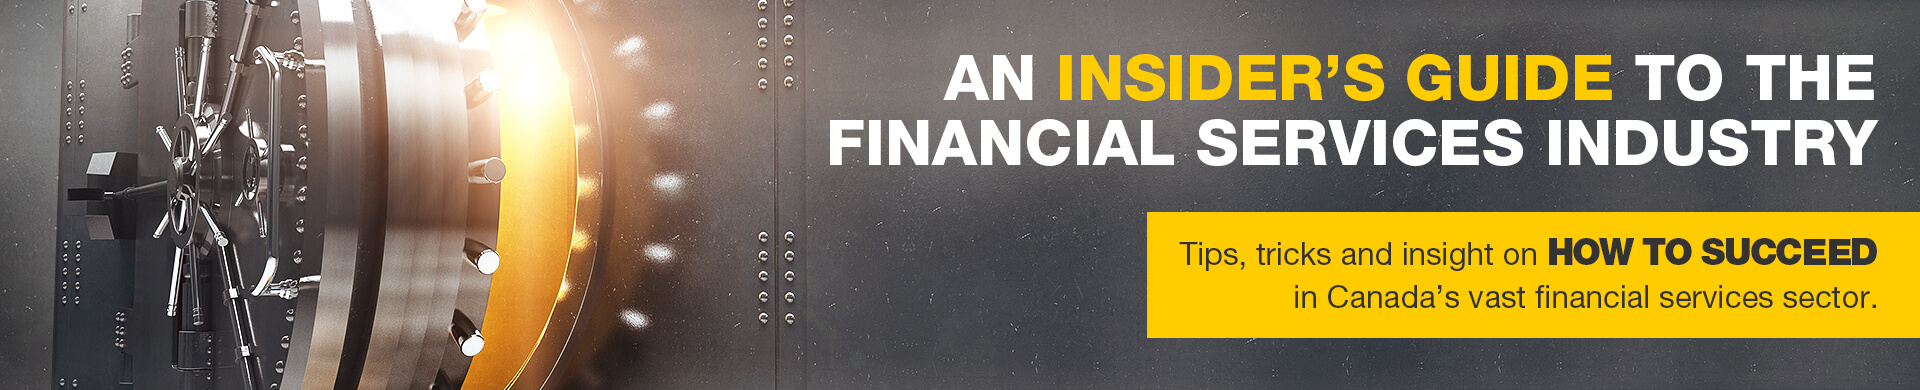 An insiders guide to the financial services industry